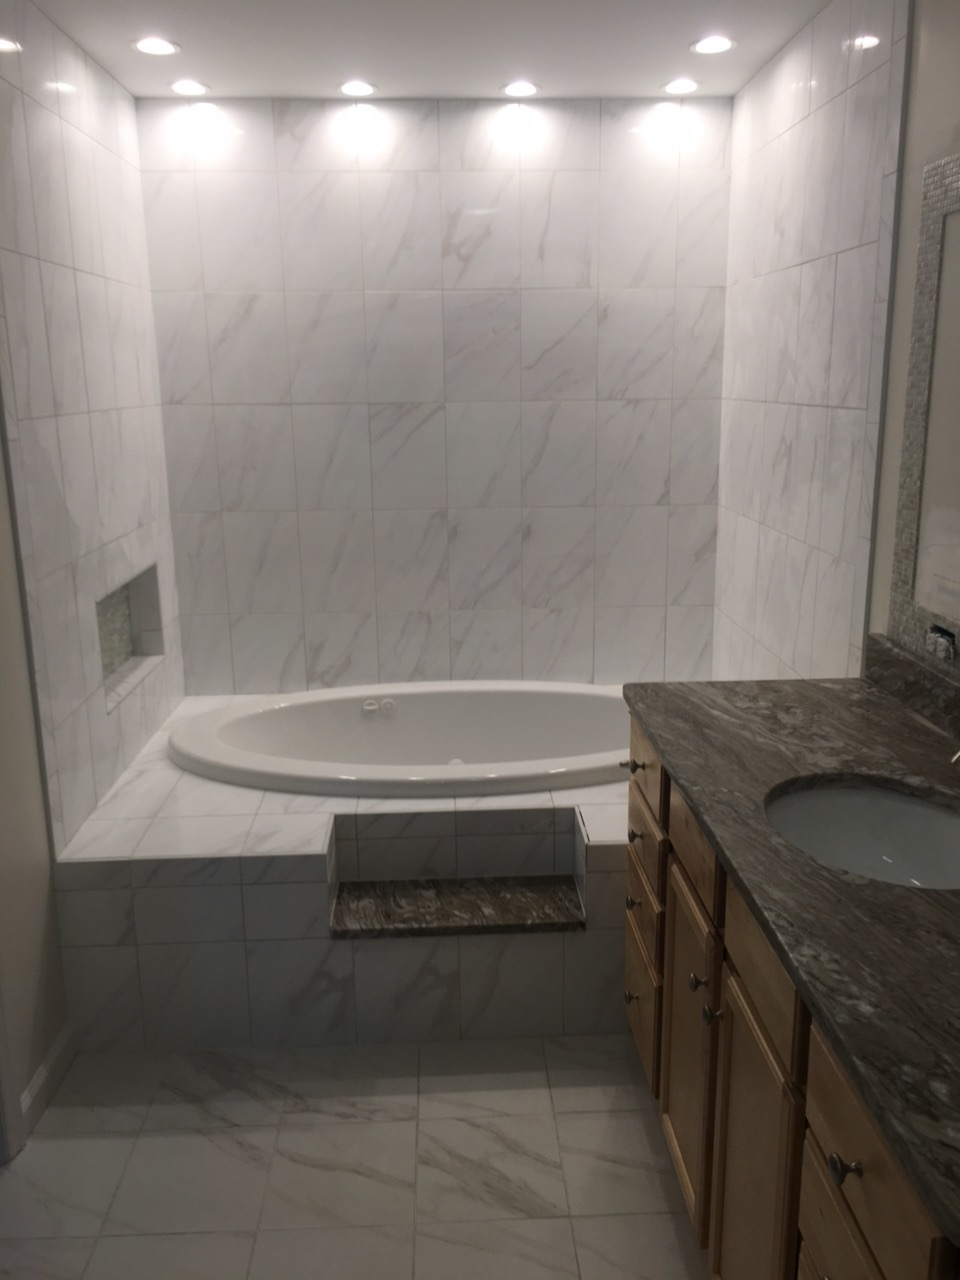 Jetted tub platform & surround